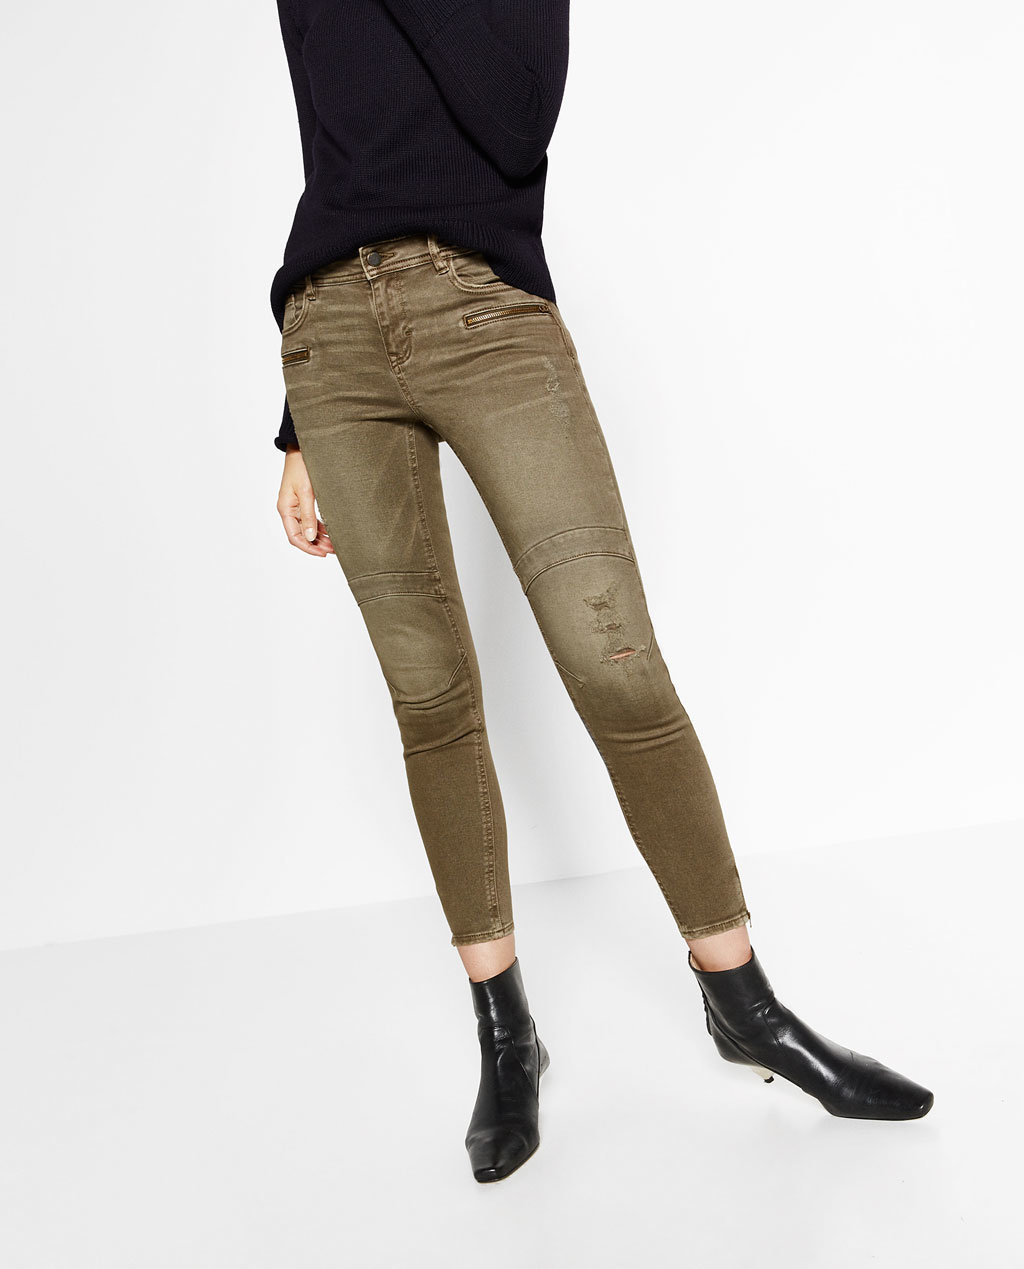 Fashioned Women Skinny Pant with Zipper